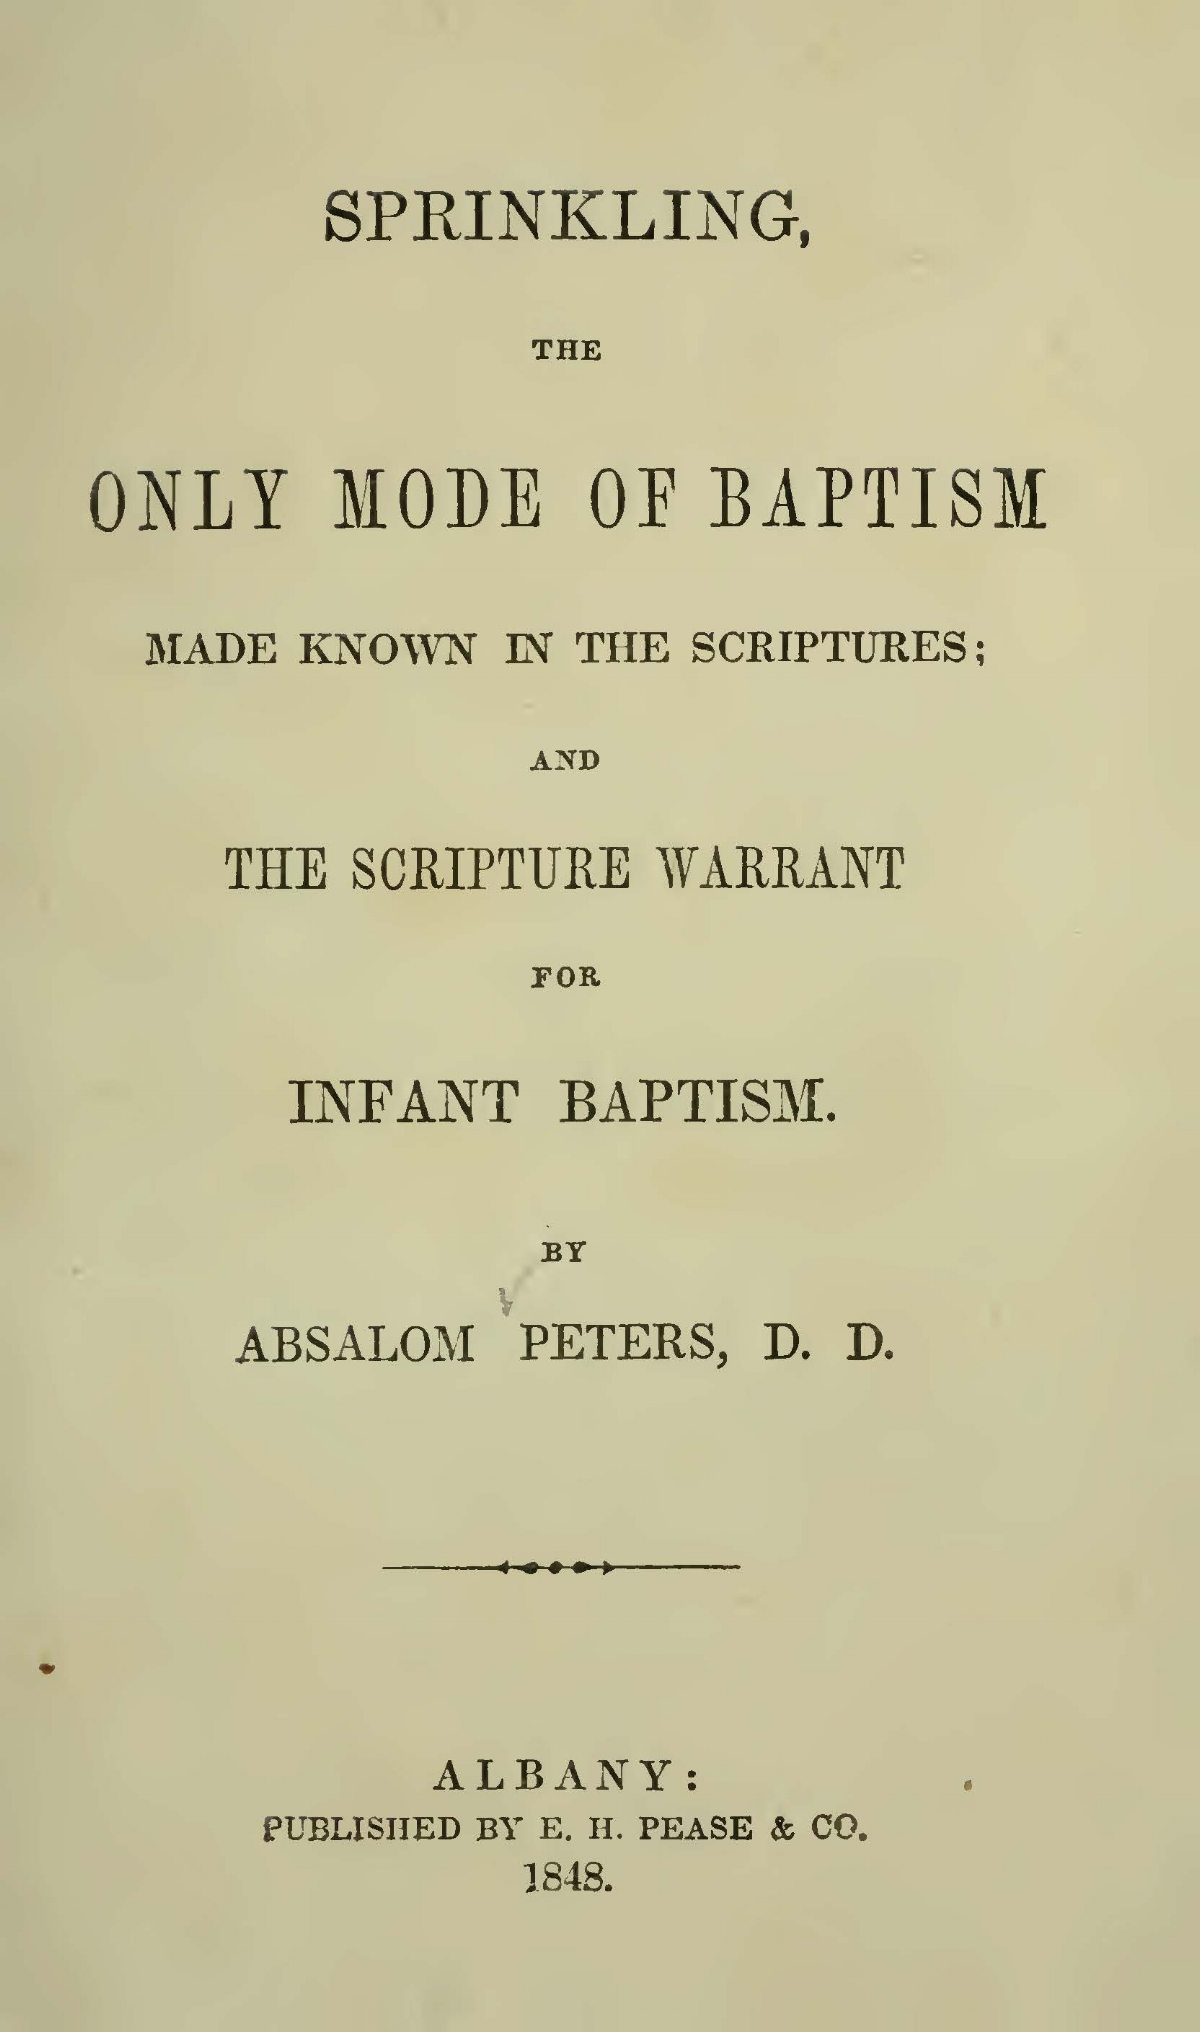 Peters, Absalom, Sprinkling, the Only Mode of Baptism Made Known in the Scriptures and the Scripture Warrant for Infant Baptism Title Page.jpg